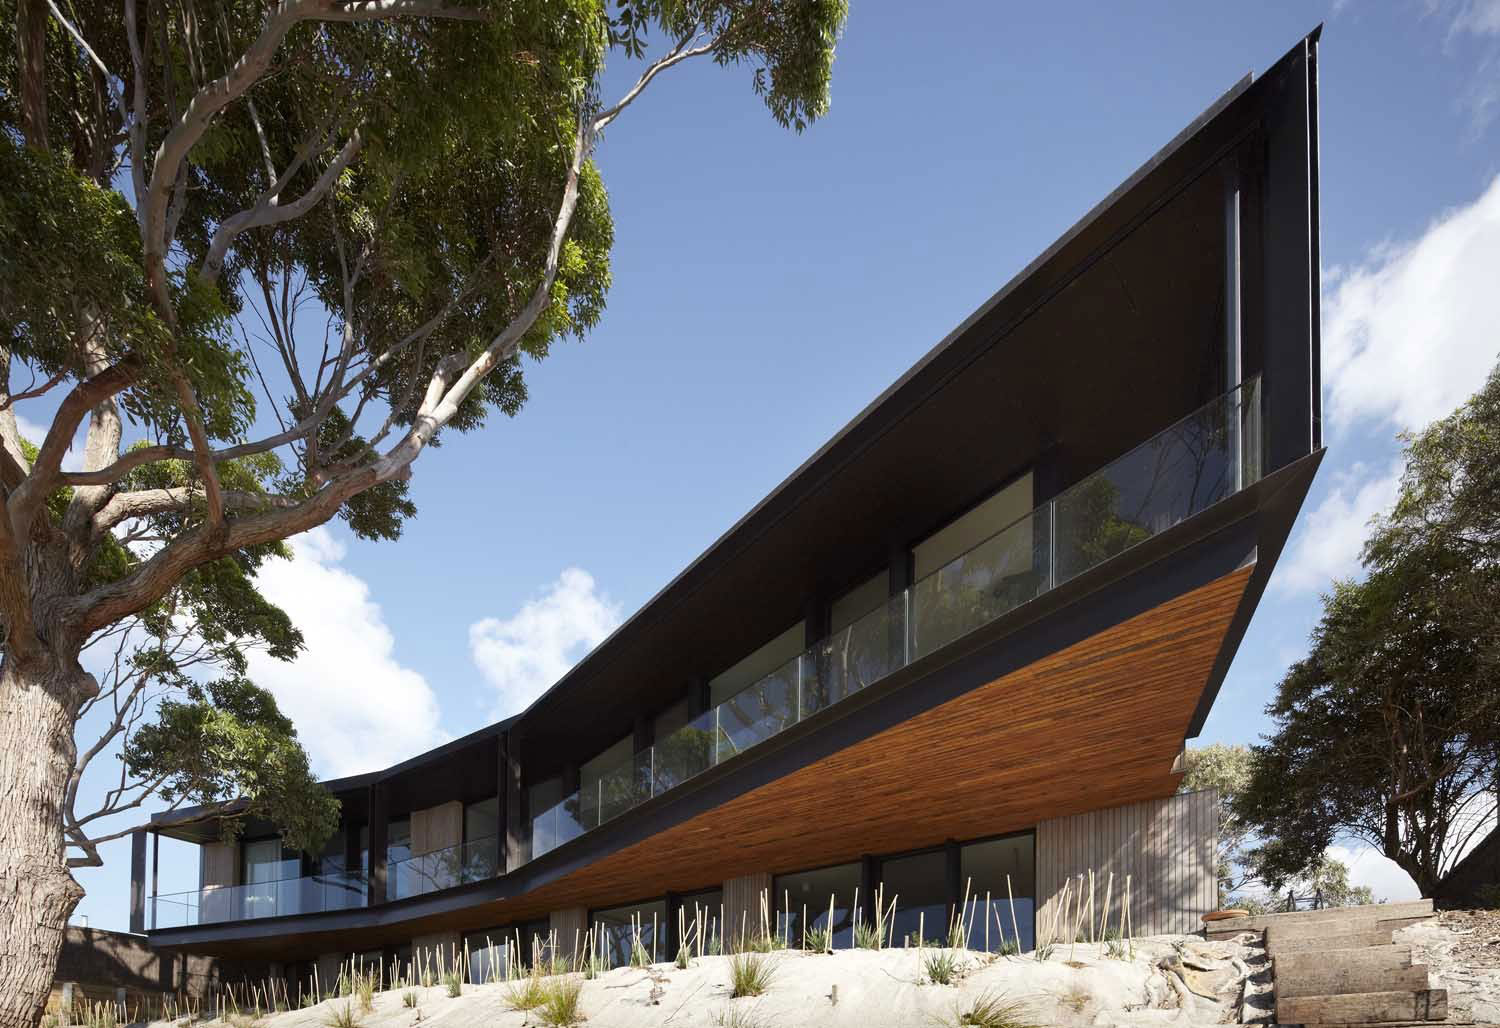 Bluff-House-by-Inarc-Architects Australian architecture and some beautiful houses to inspire you